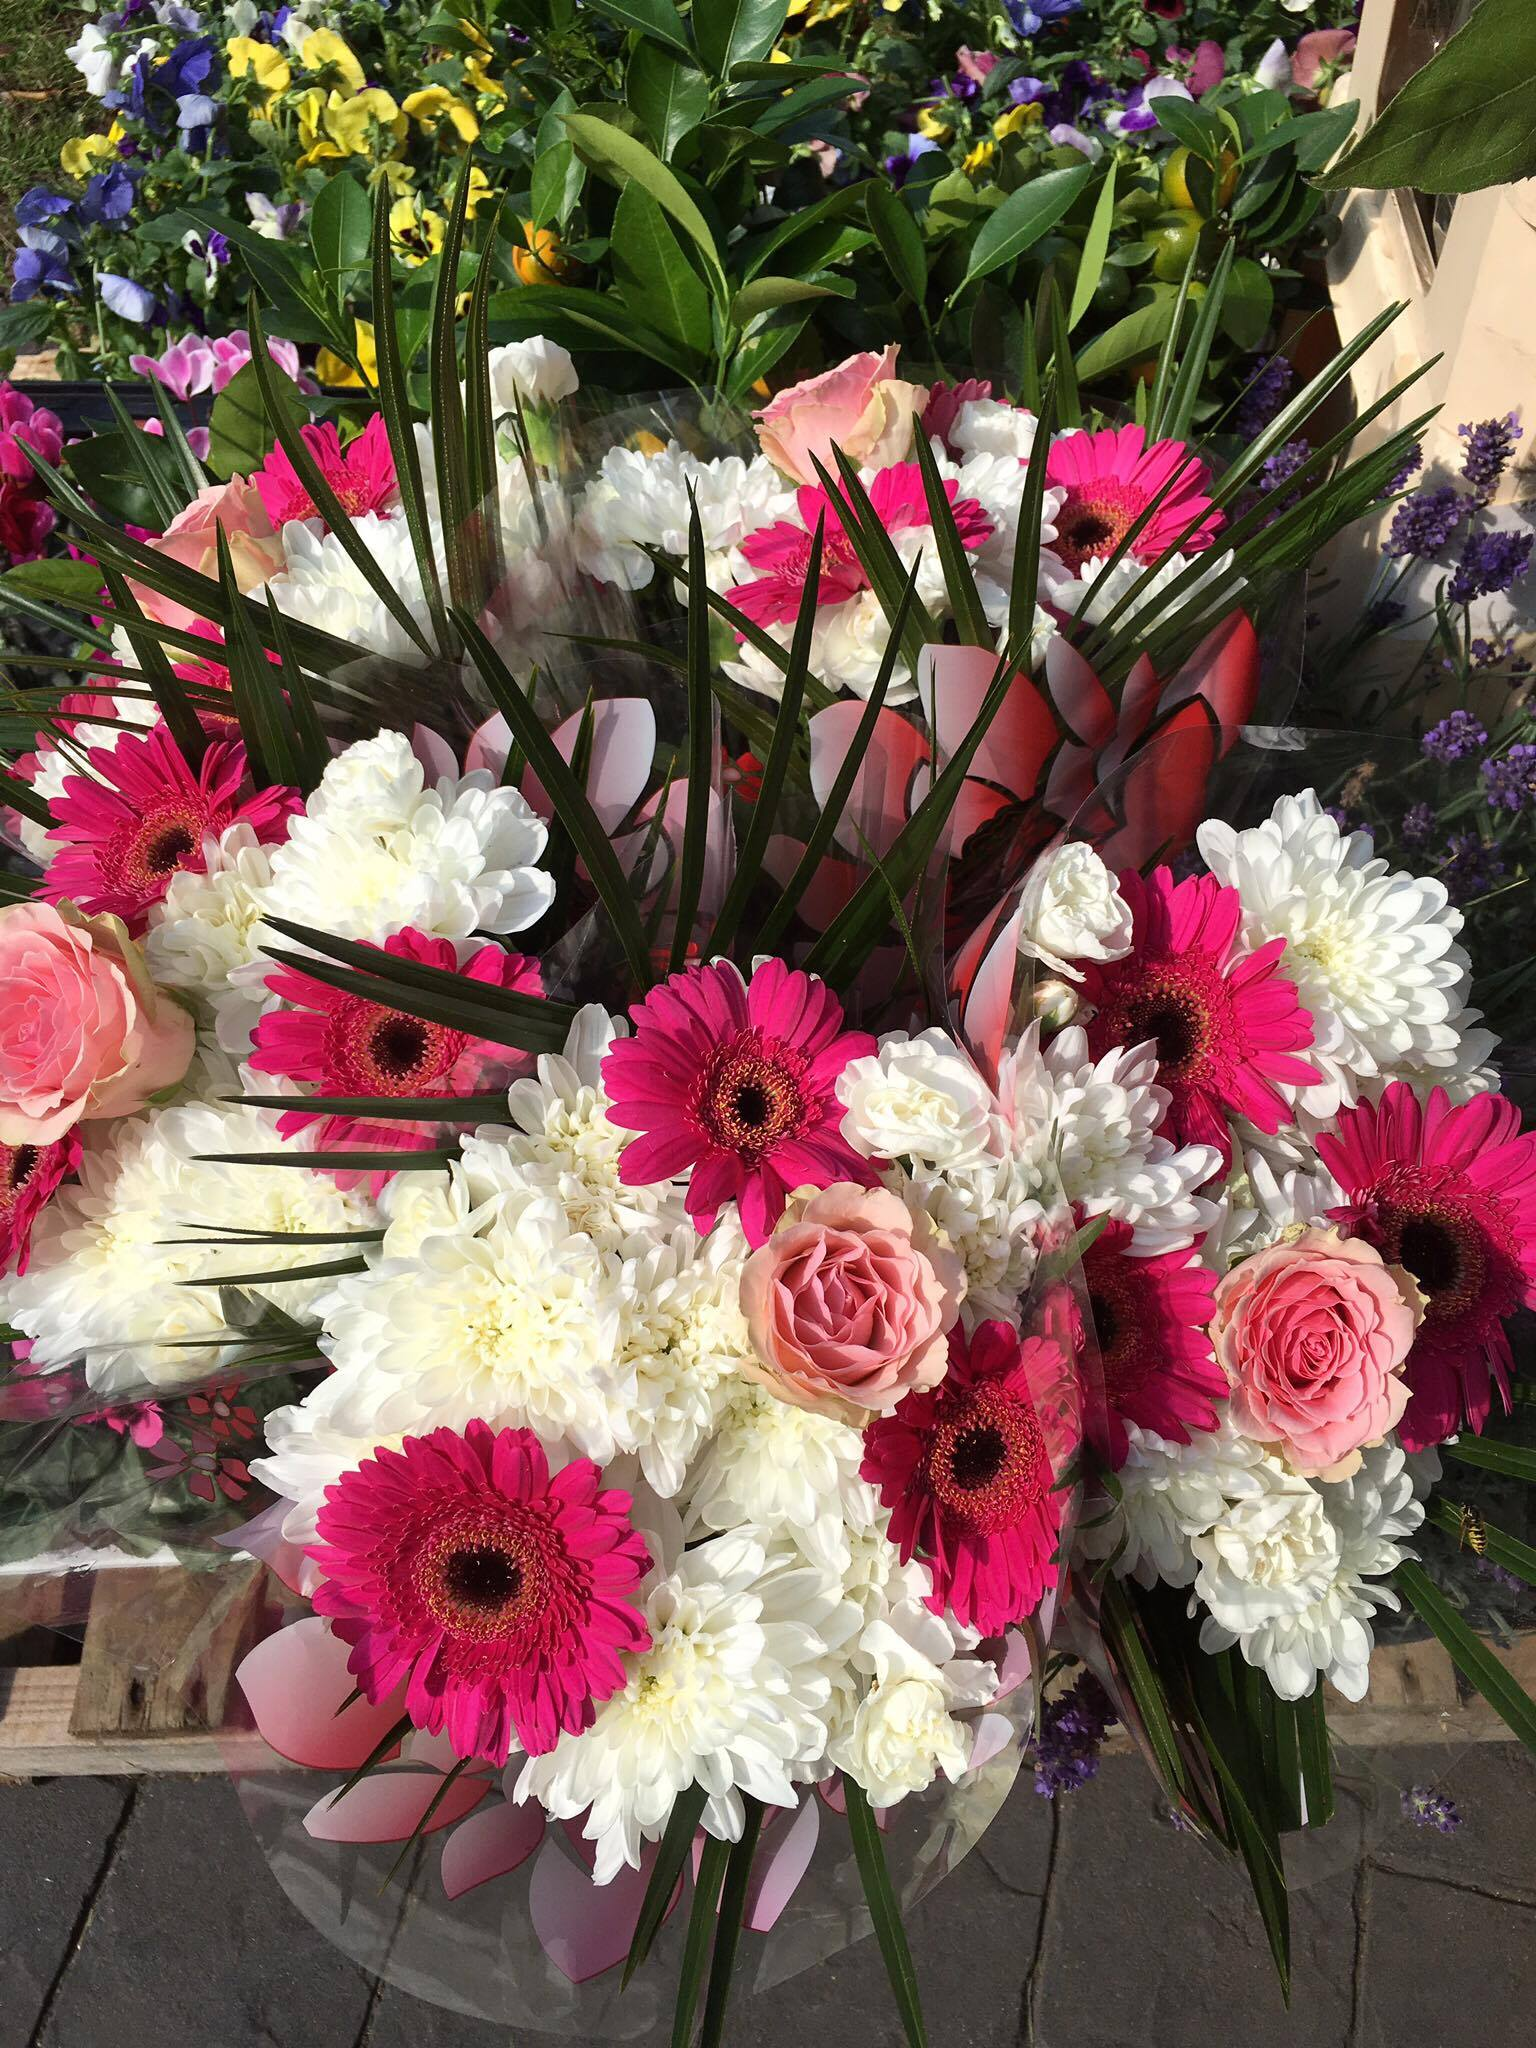 Cut flowers only £2.95 a bunch